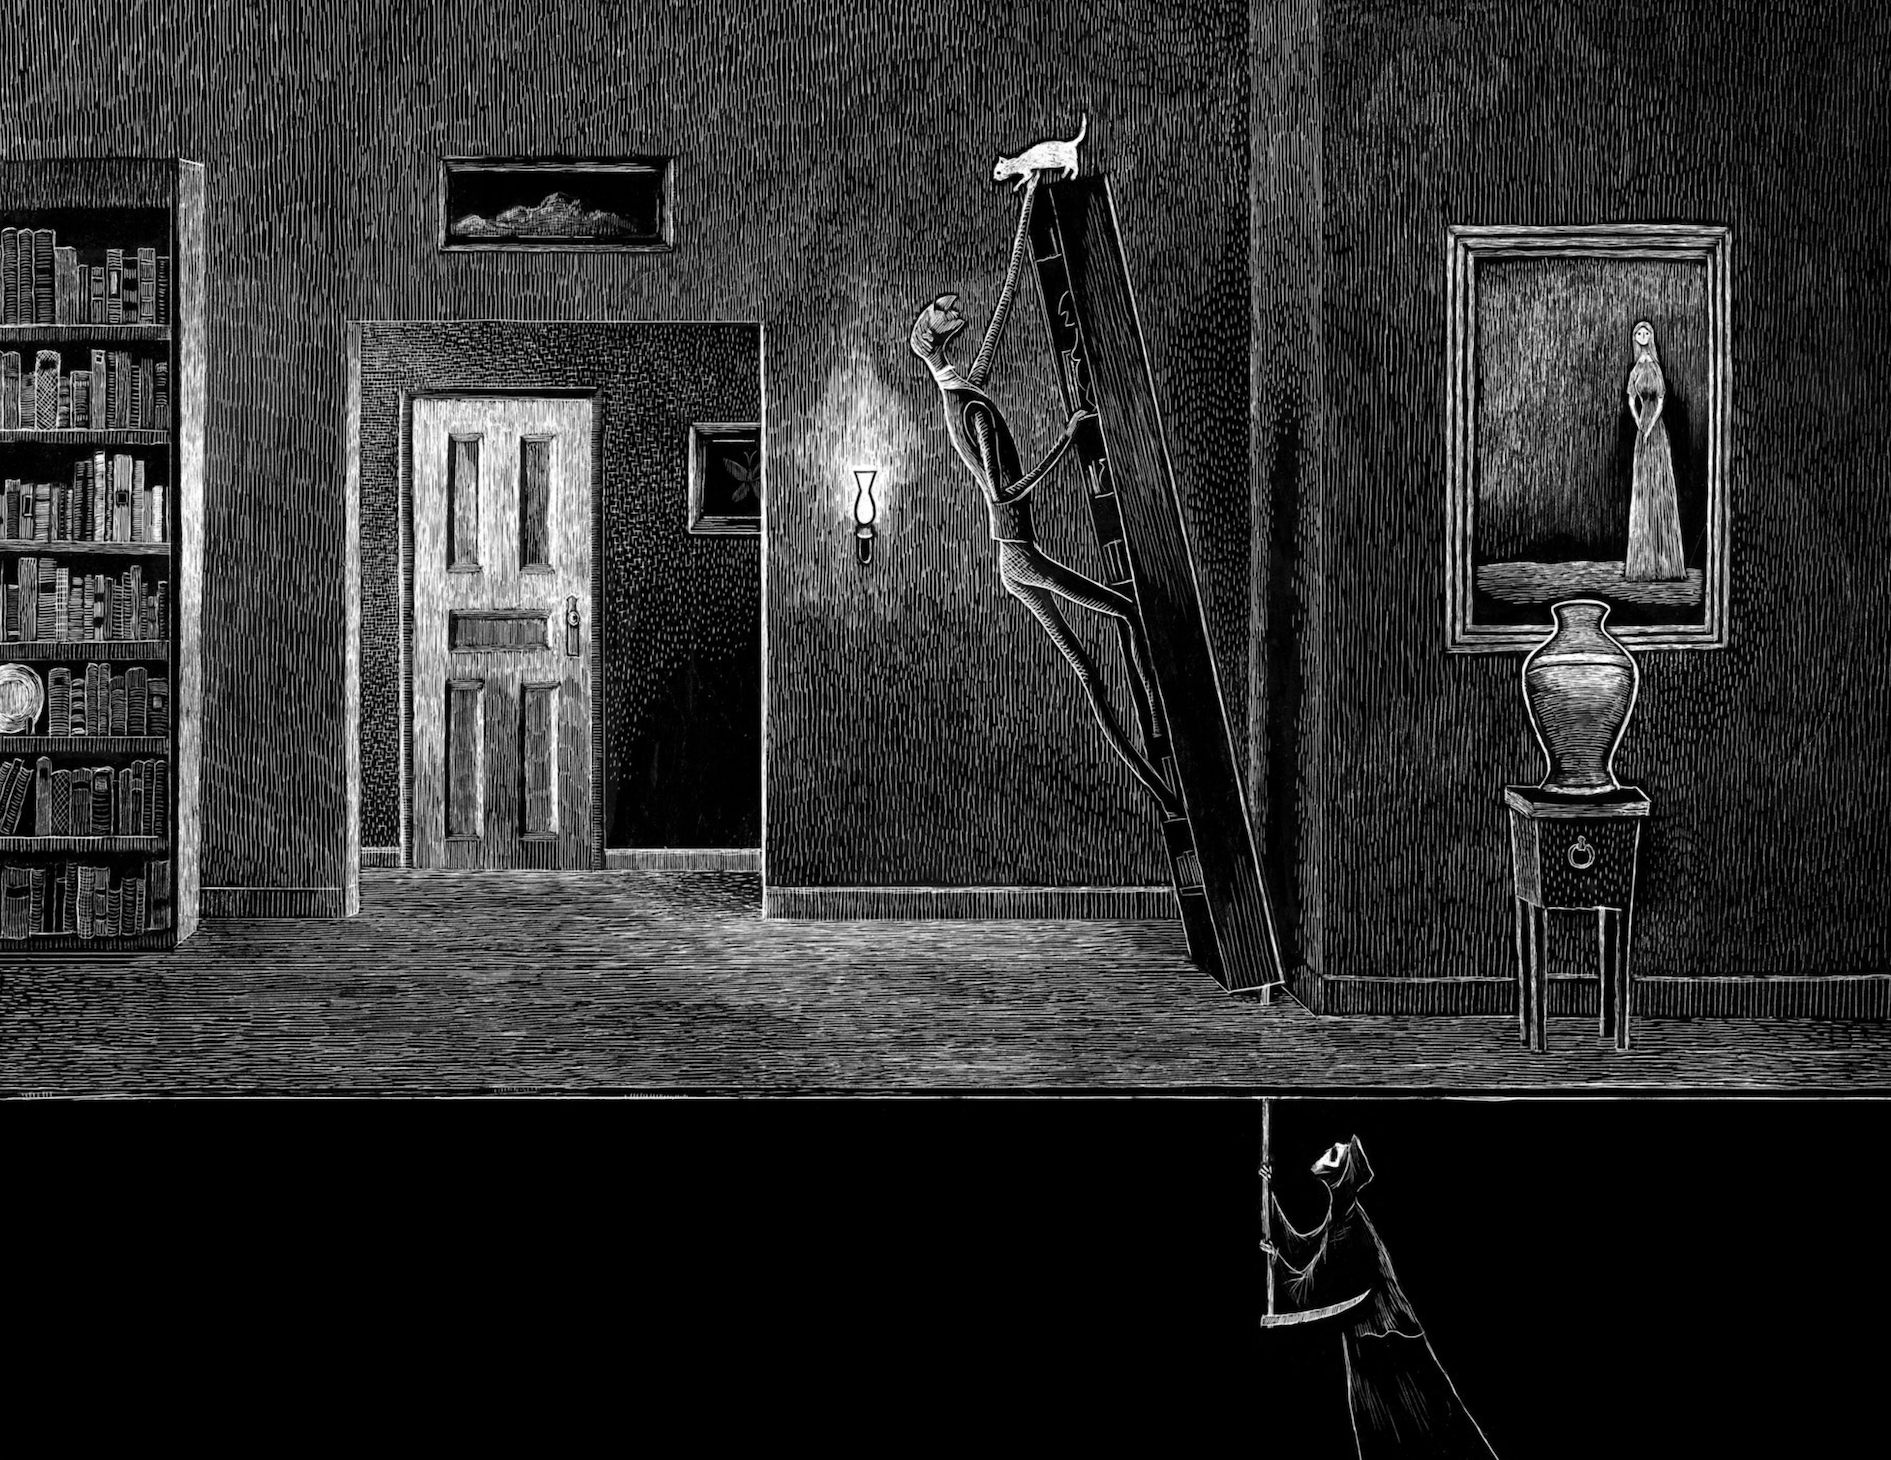 The Psychoanalyst is climbing on his bookshelf to reach his cat while Death is under the floorboards.  Death is pushing the handle of his scythe up through a hole in the floor to tip the bookshelf over.